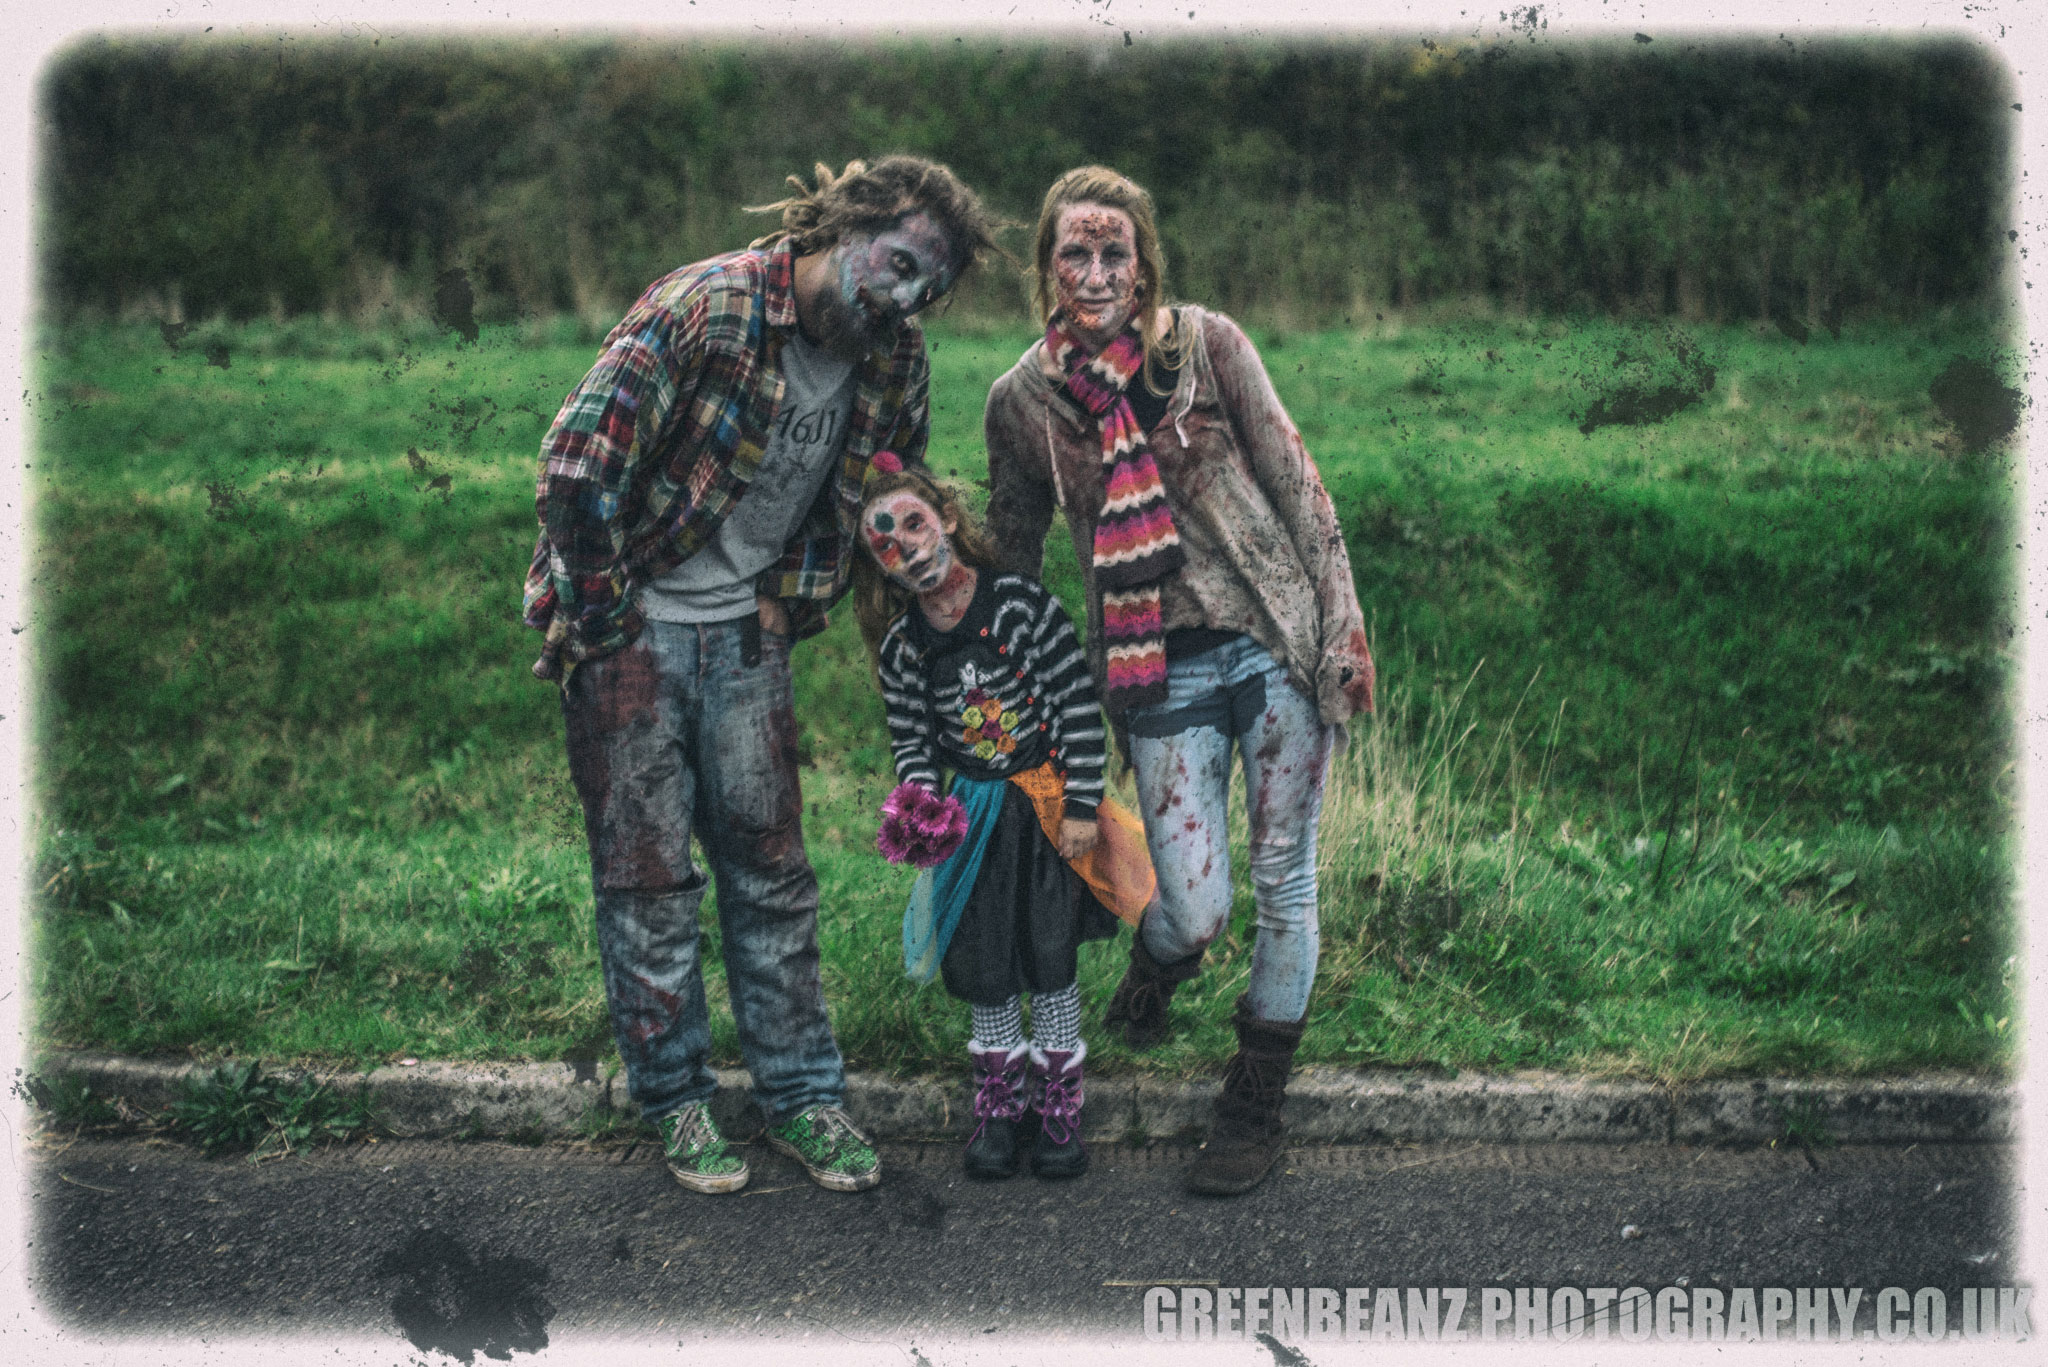 Discarded Undead Family Snap found near the start of Ivybridge Zombie Walk